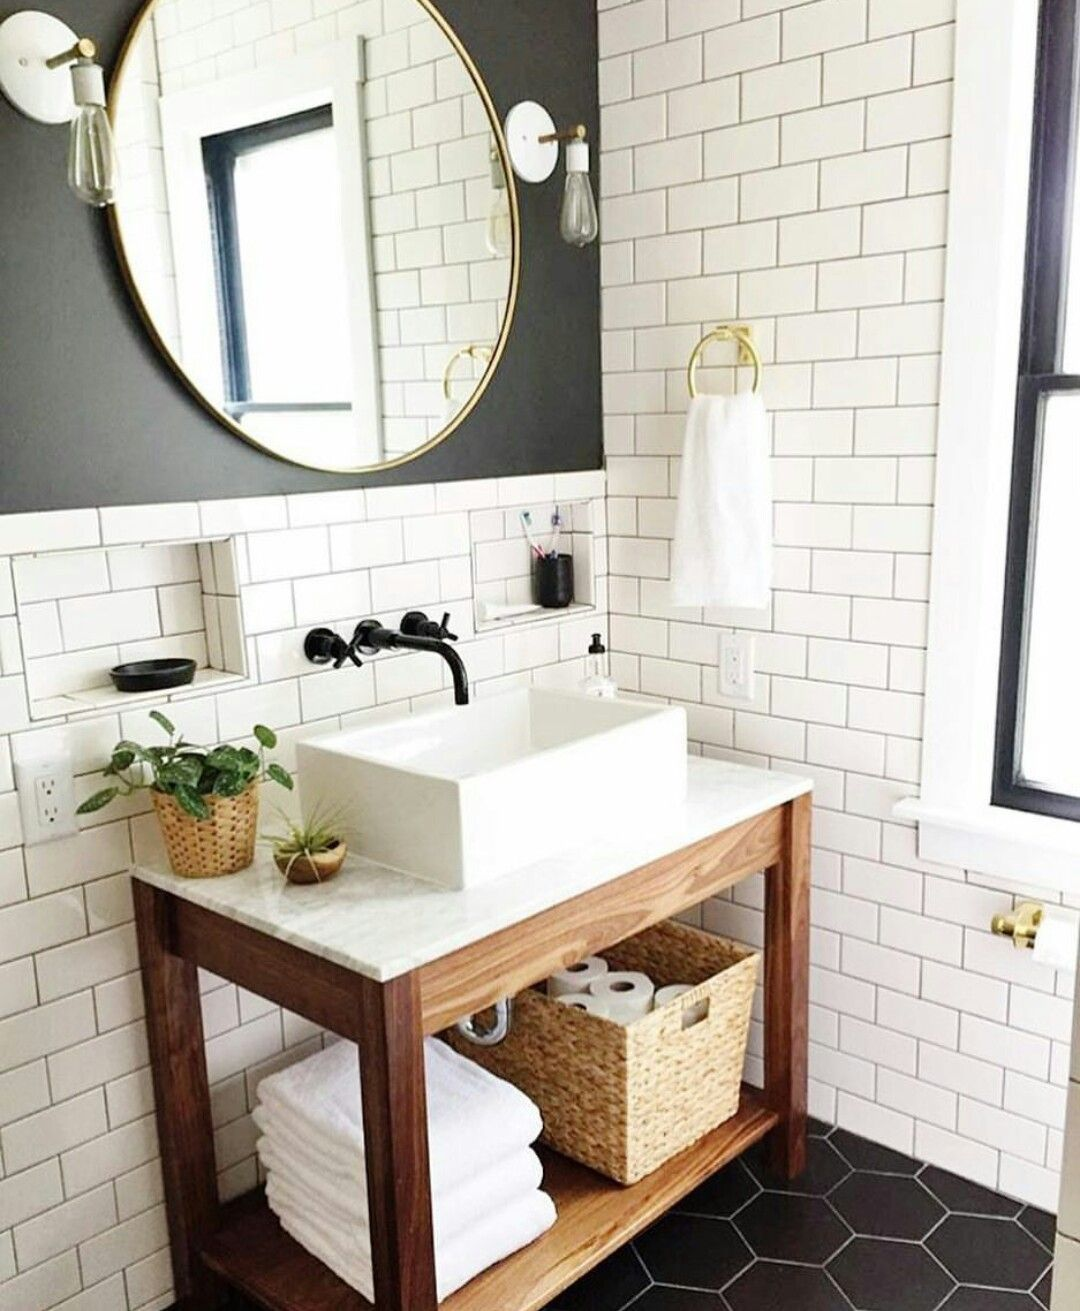 Pin by Brent Jarvis on Guest bath | Pinterest | Guest bath, Bath and ...